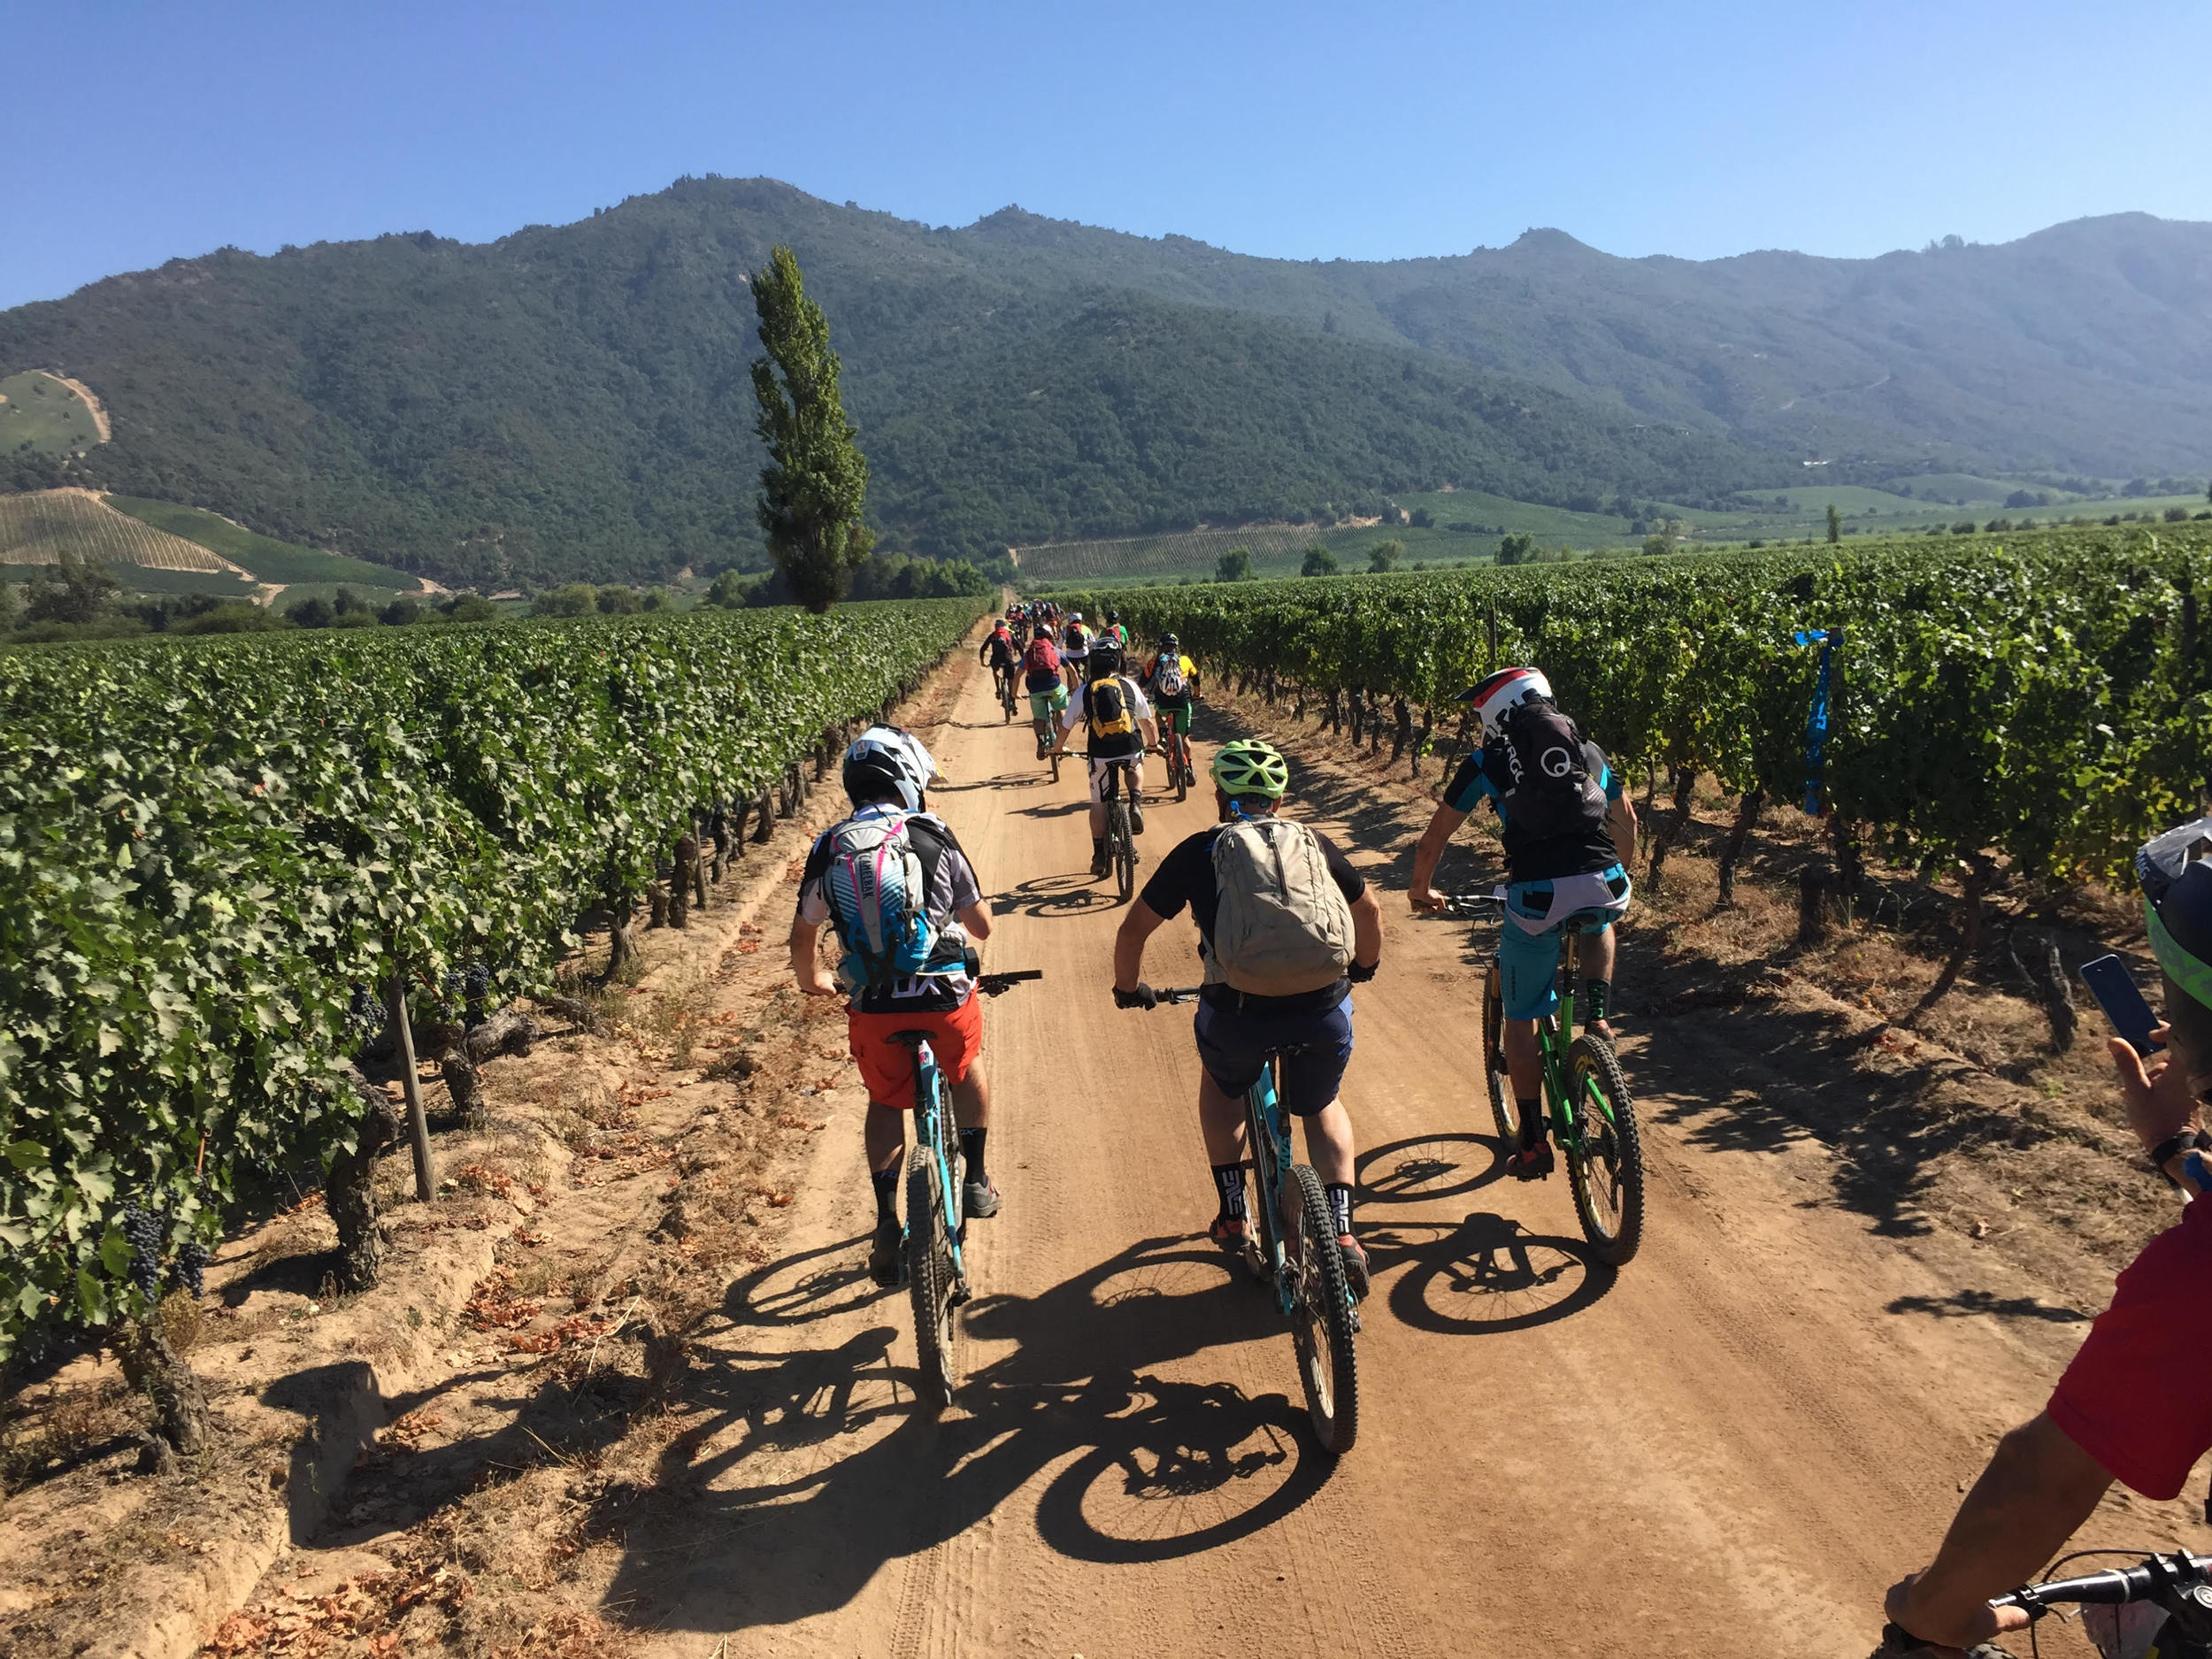 Day 3 was situated in Santa Cruz in the Colchagua valley wine region. Riders set off from camp to the top of the mountain ahead for the first stage of the day.